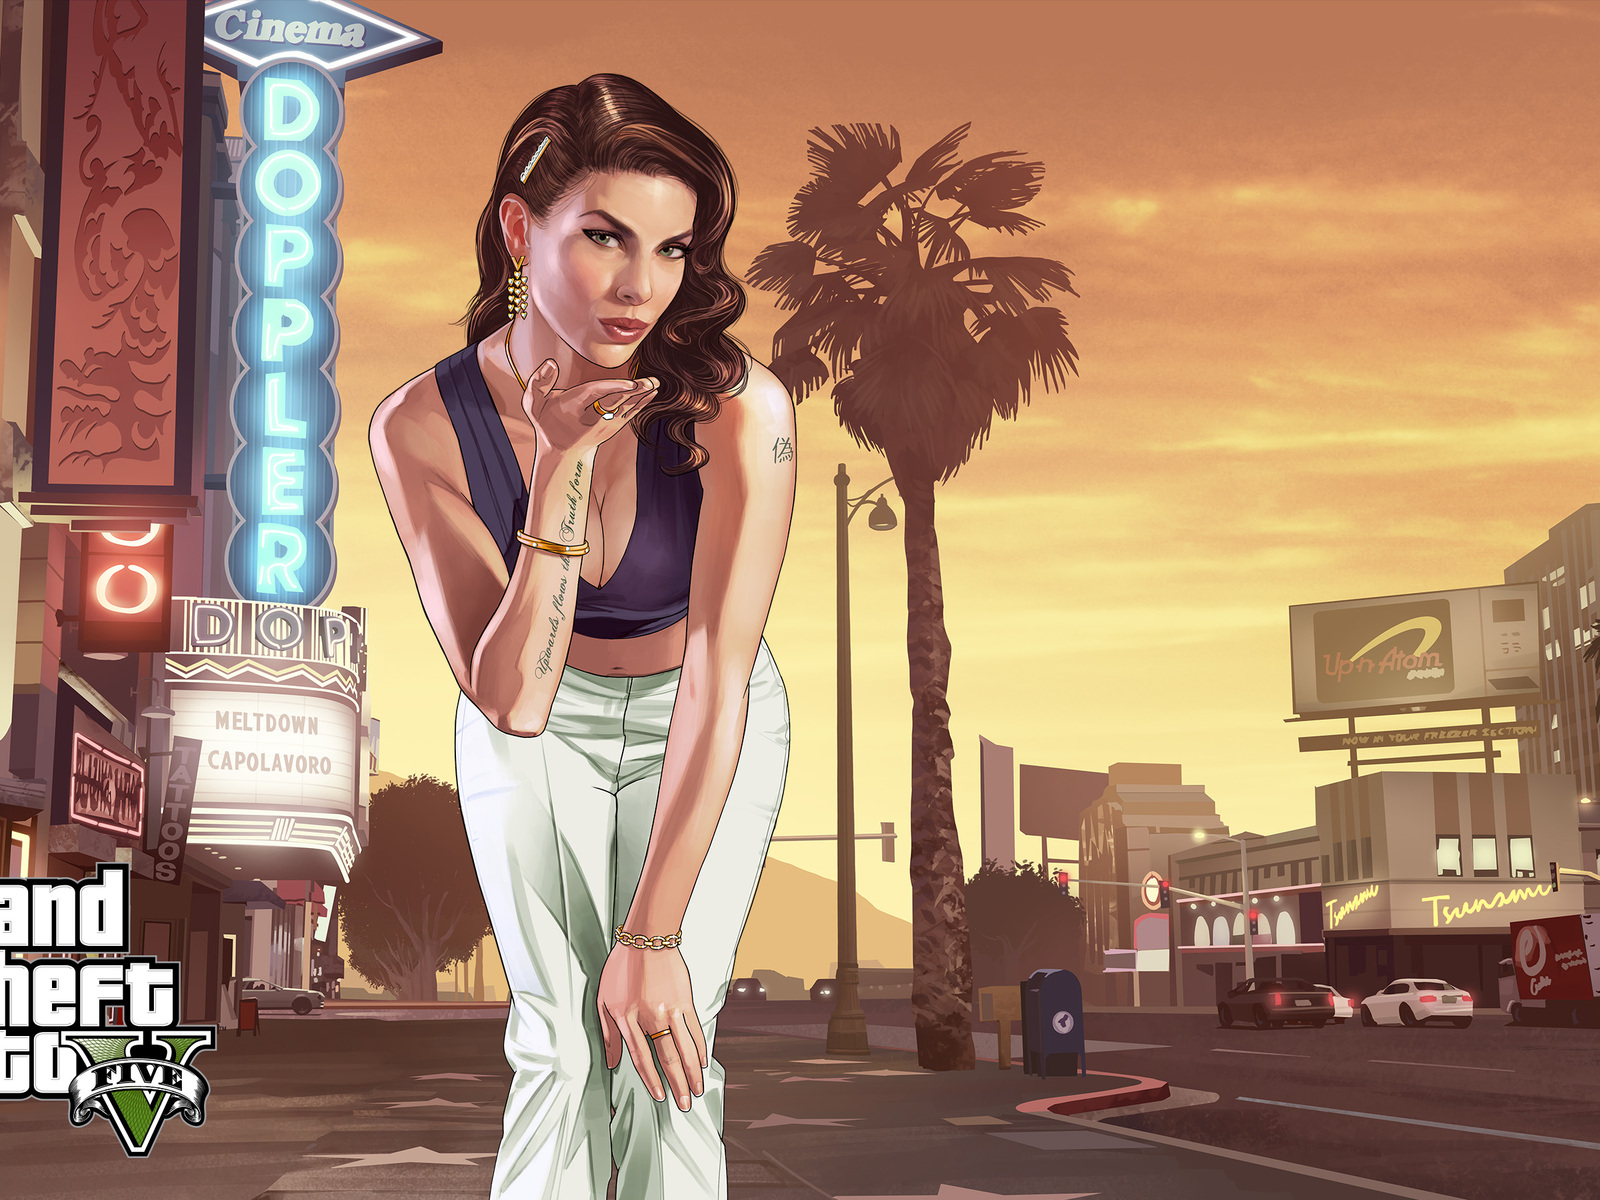 gta-5-loading-girl.jpg